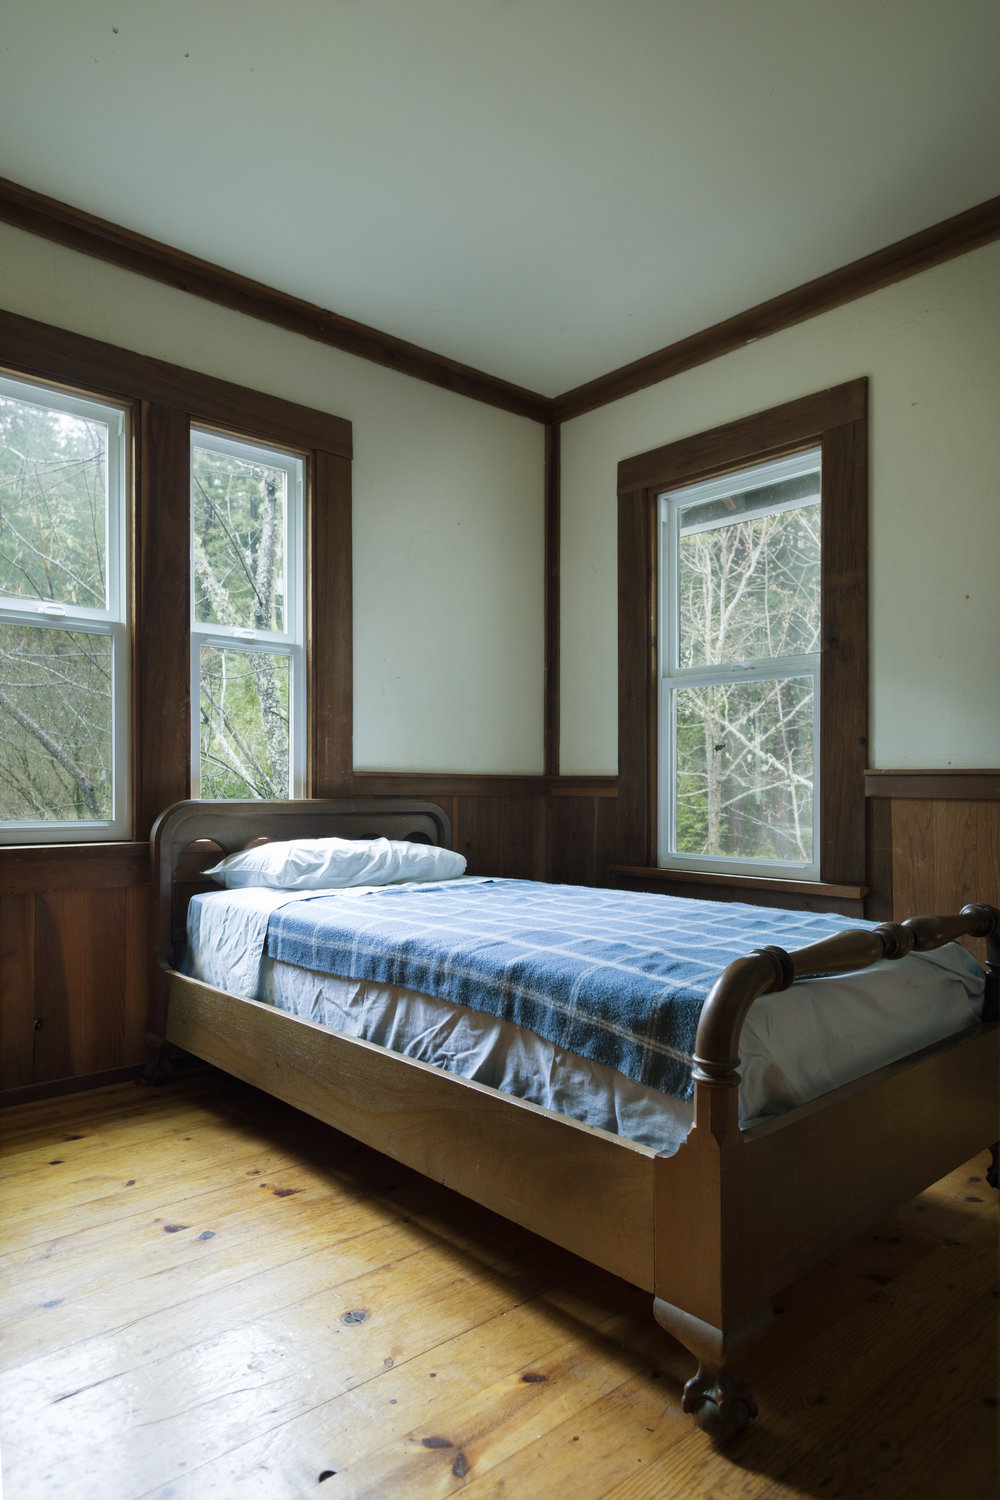 second bedroom in a home for sale in Philo, CA